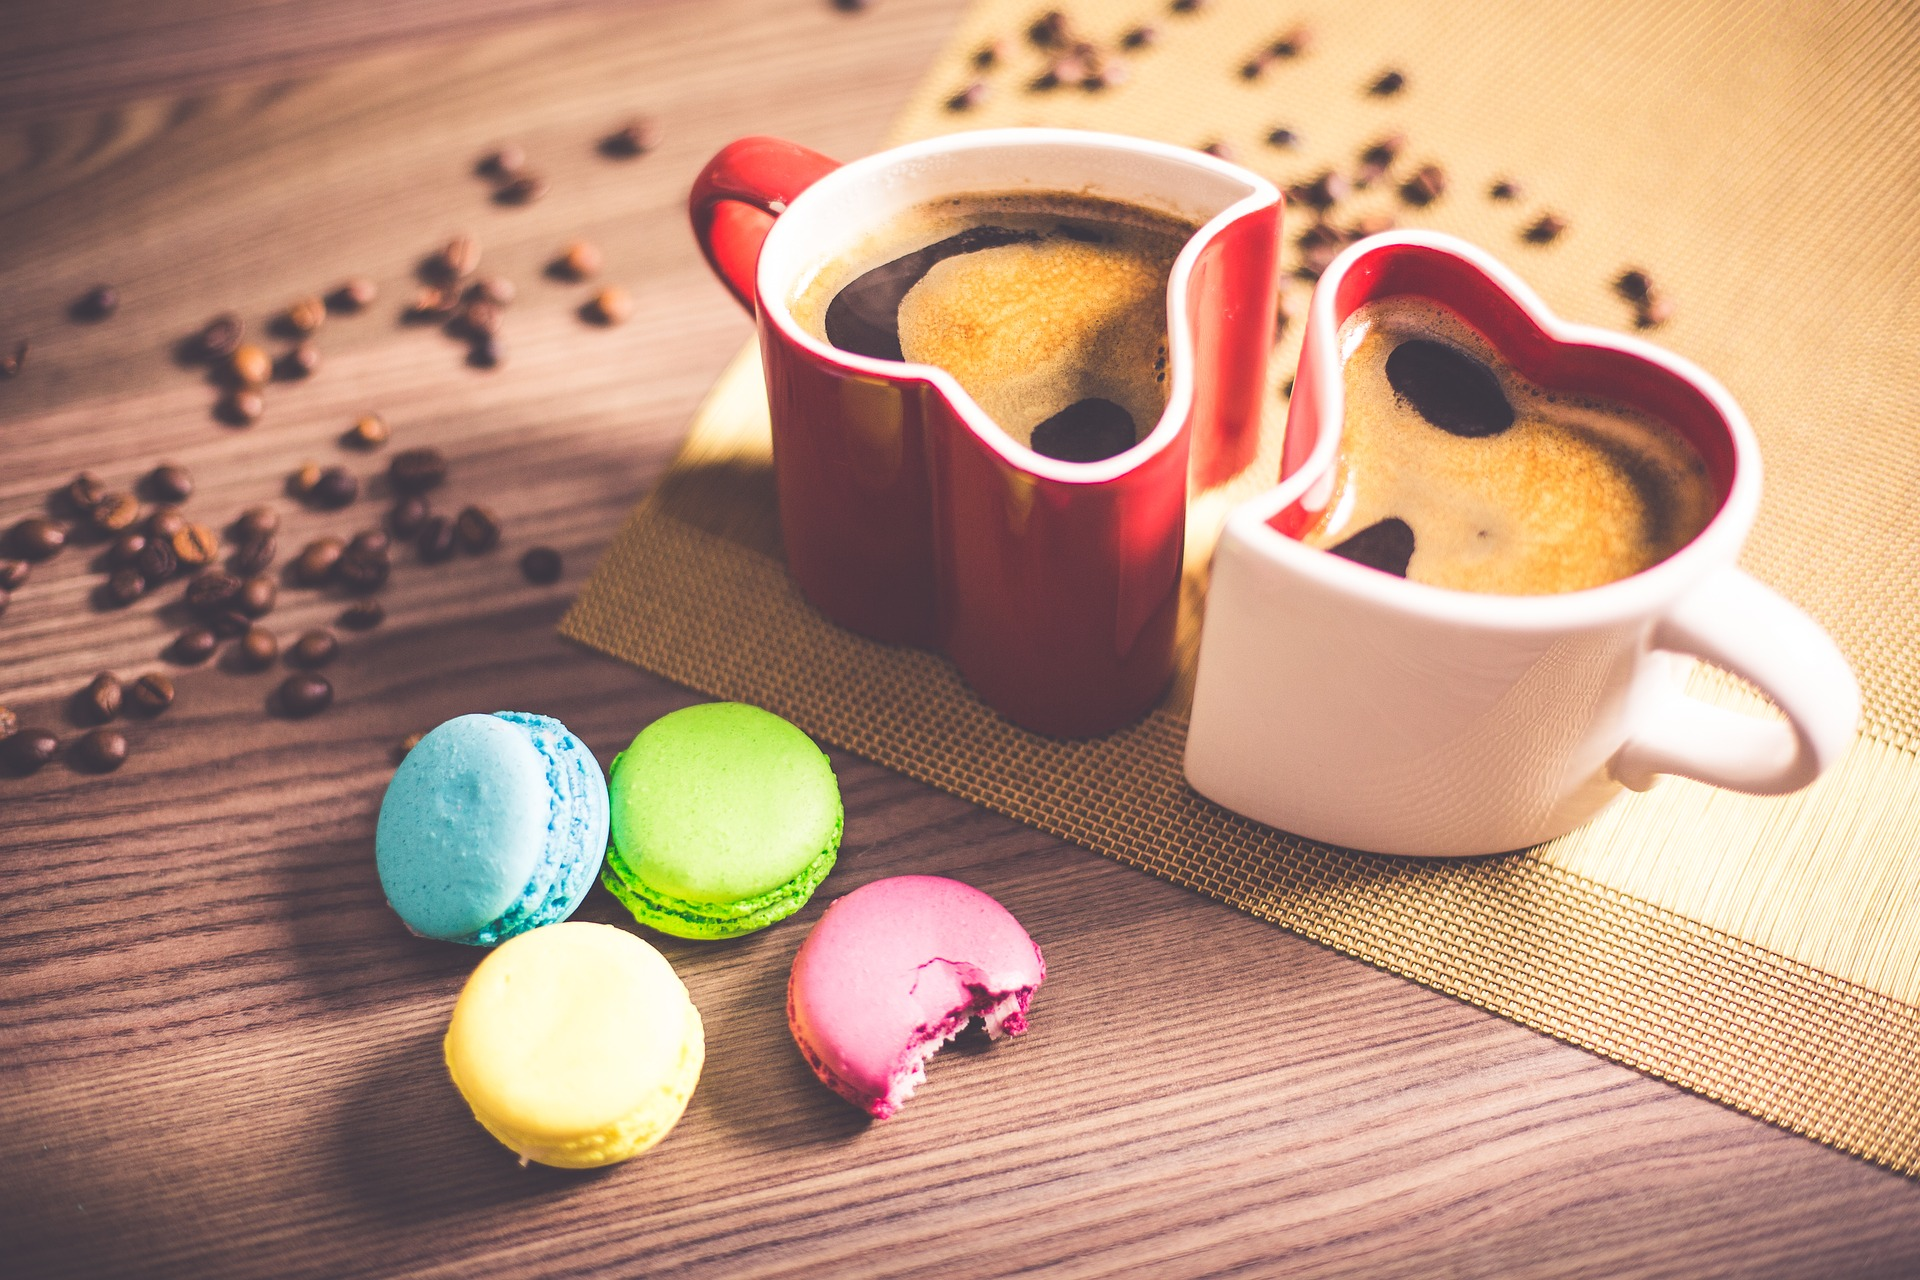 Two heart-shaped coffee mugs with hot coffee, macrons and coffee beans on a table.